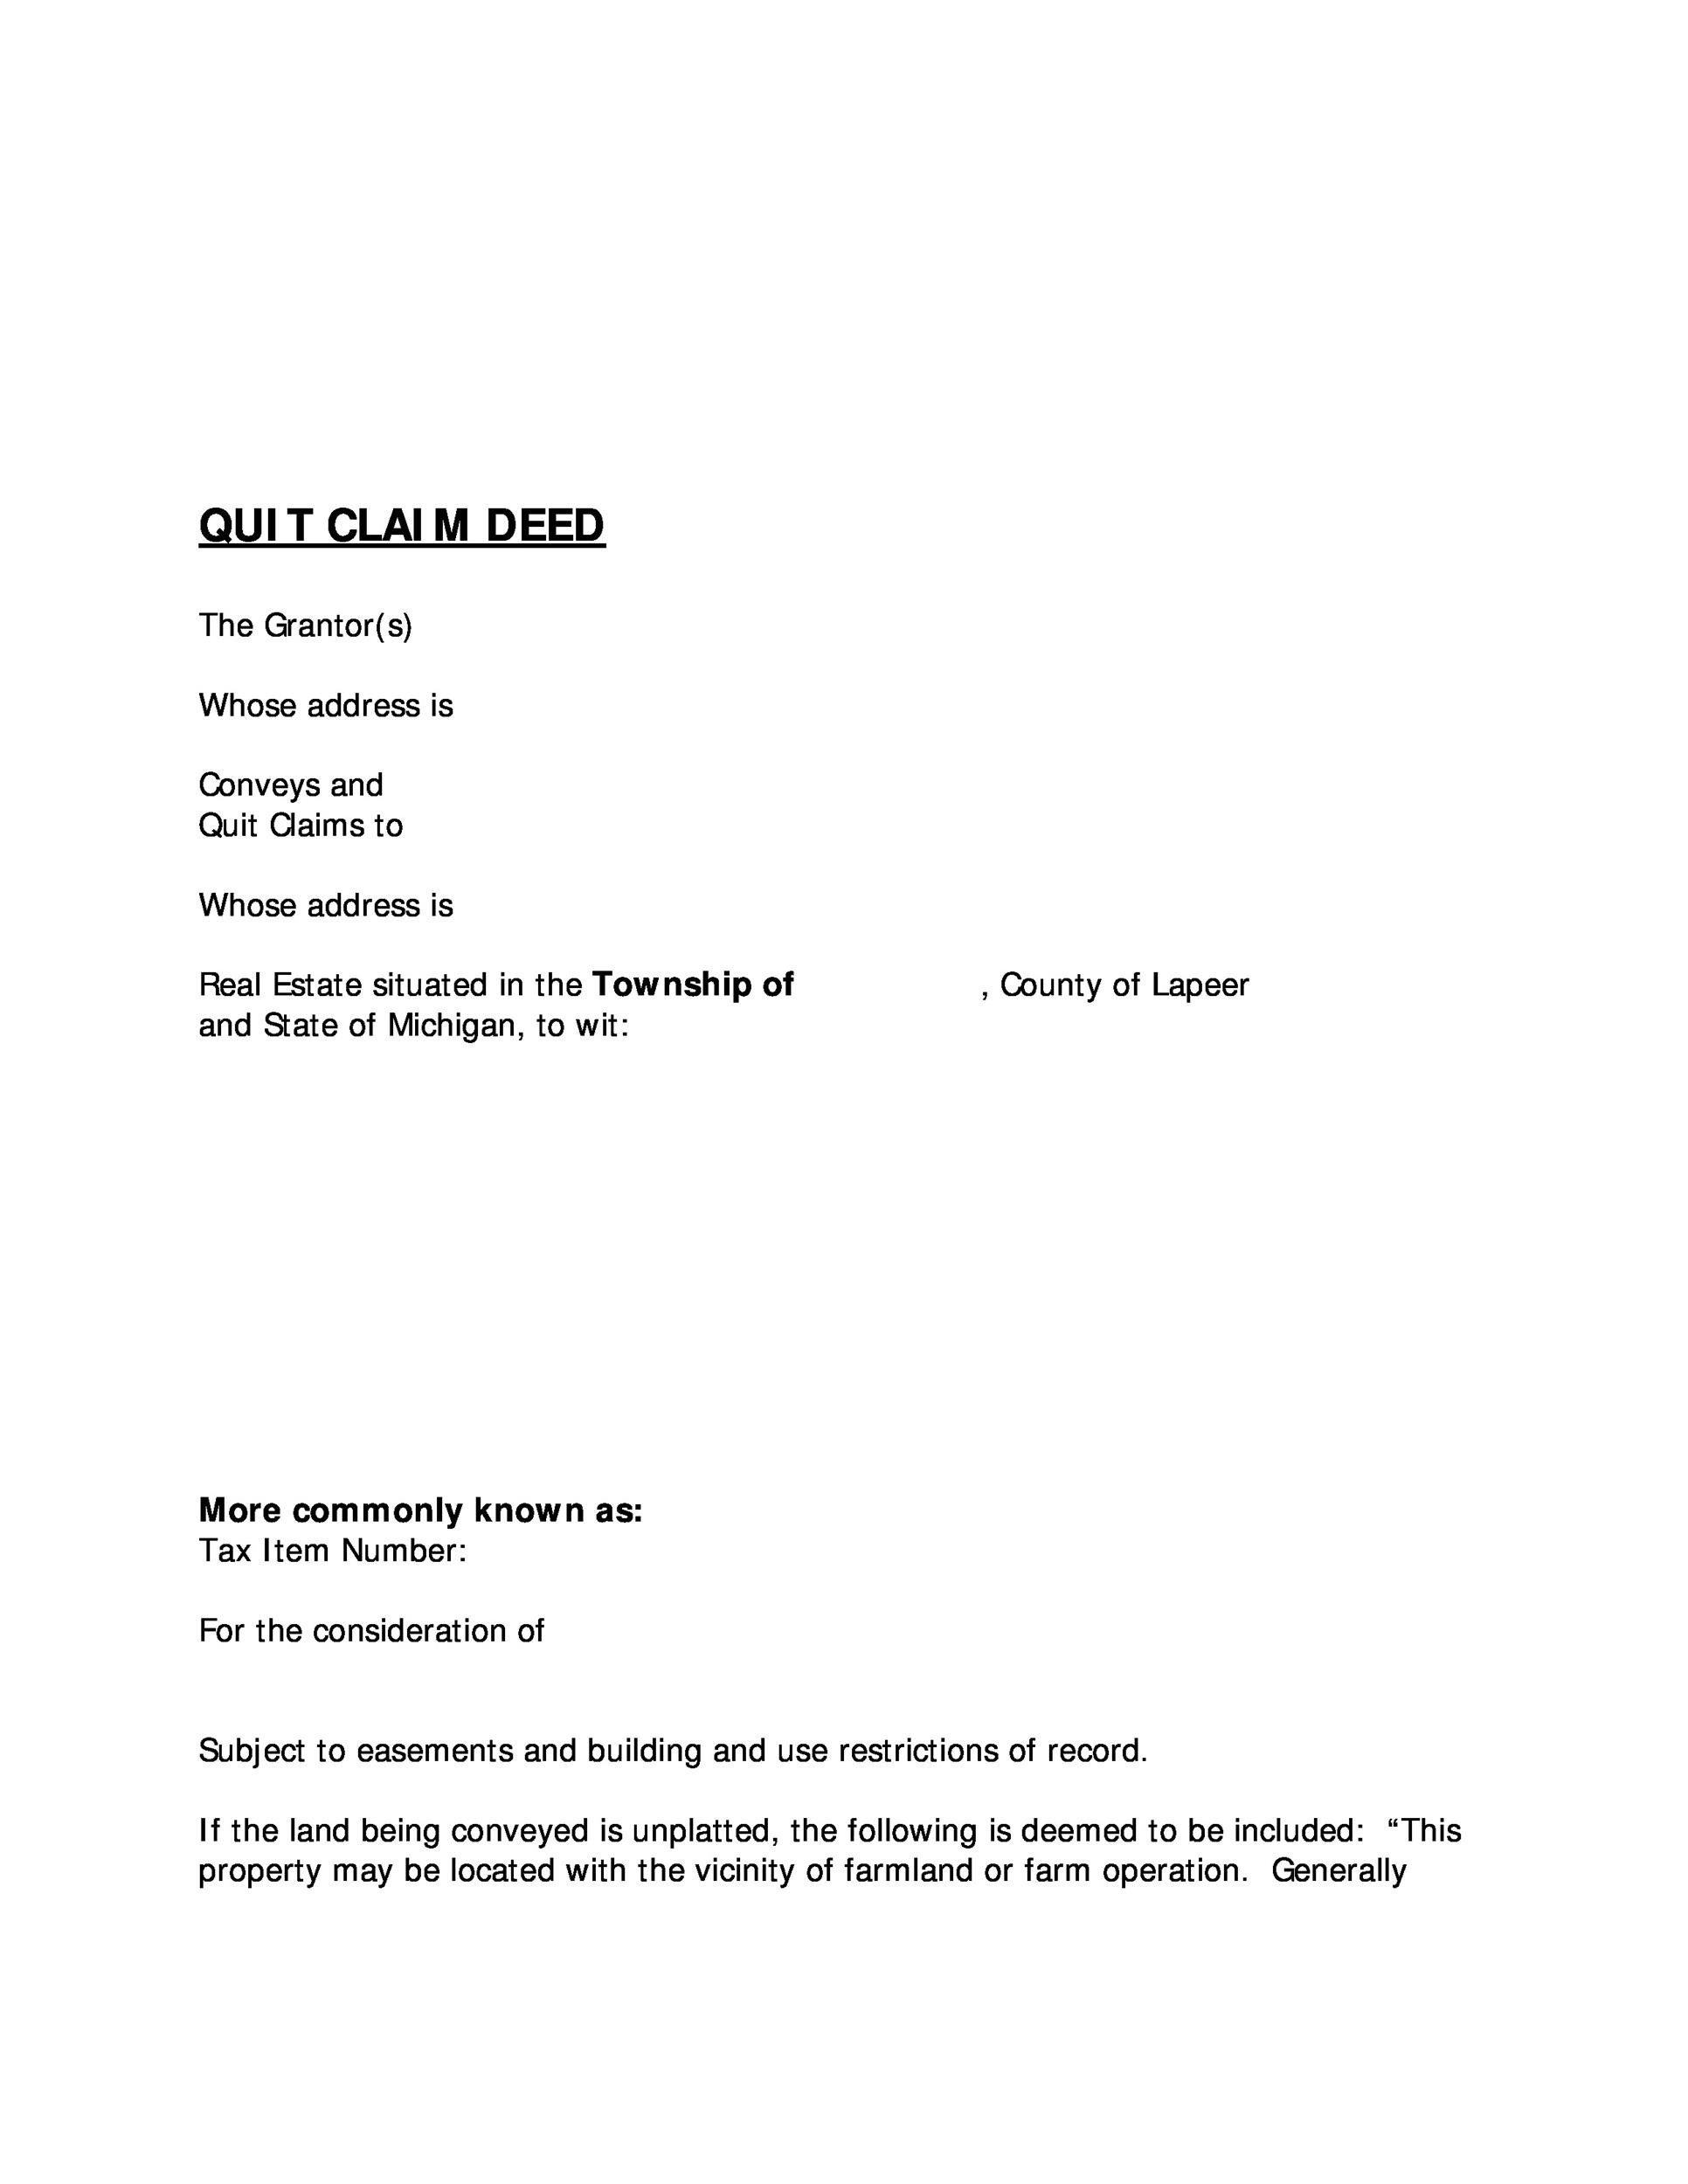 46 Free Quit Claim Deed Forms Templates Template Lab – Warranty Deed Form Template